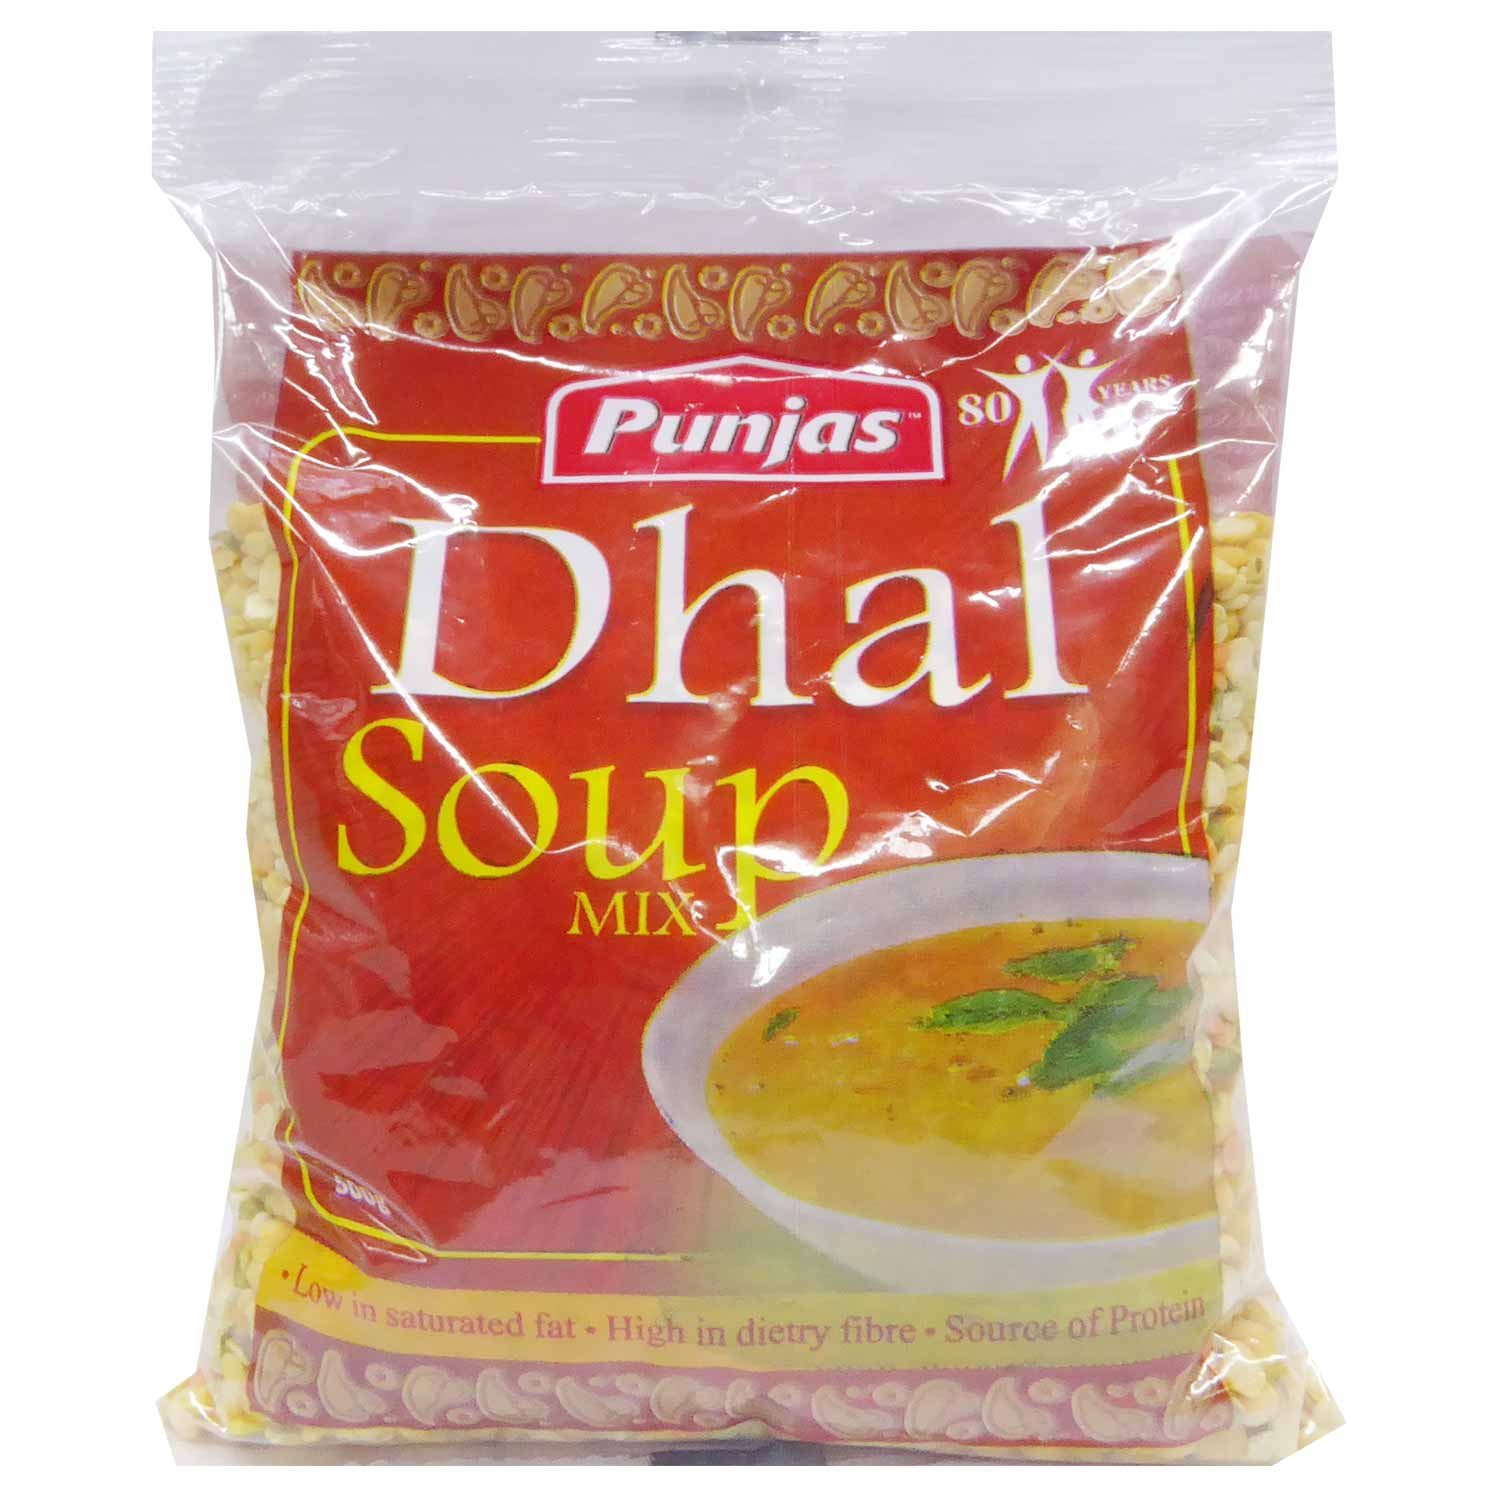 Punjas Dhal Soup Mix